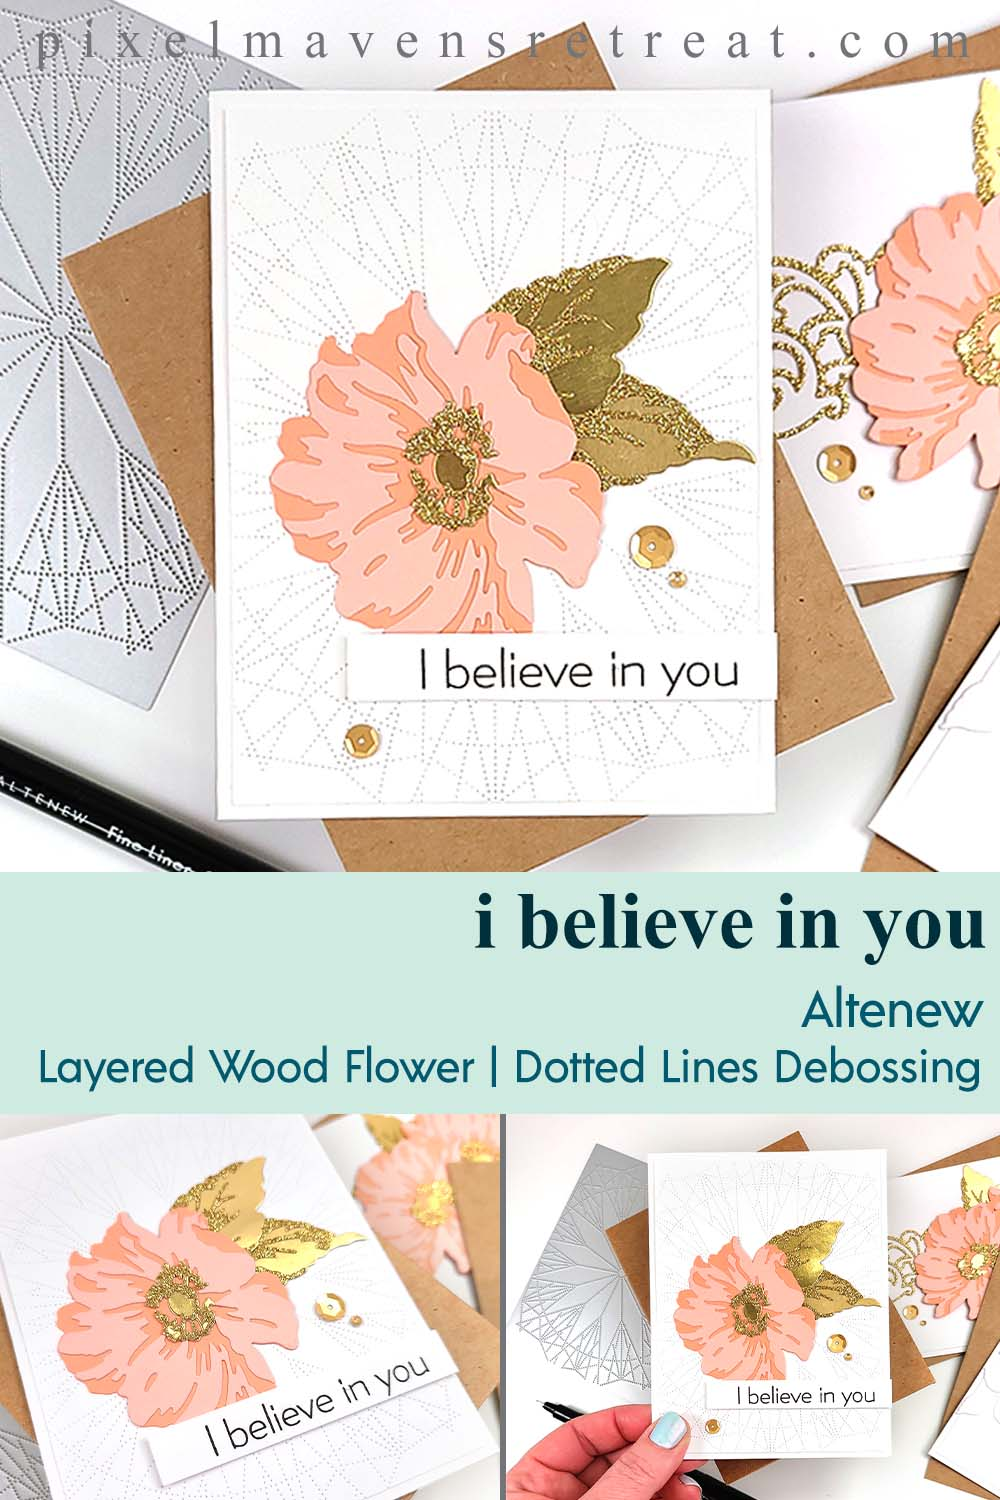 Altenew Bursting With Creativity Release Blog Hop + Giveaway